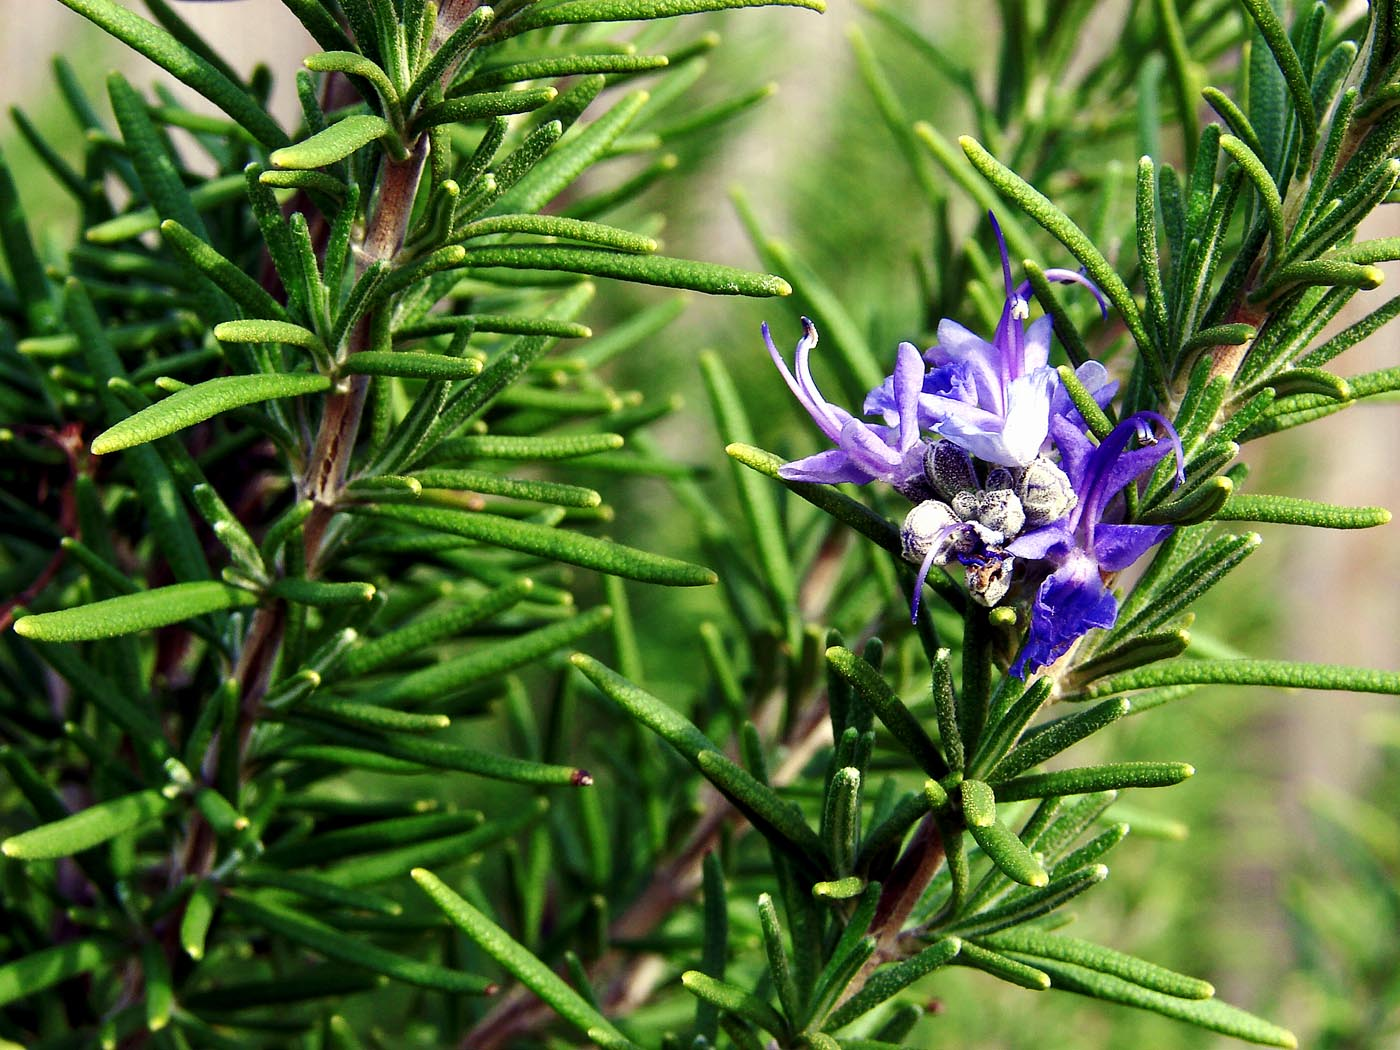 How to grow Rosemary | Growing Rosemary in containers | Rosemary care